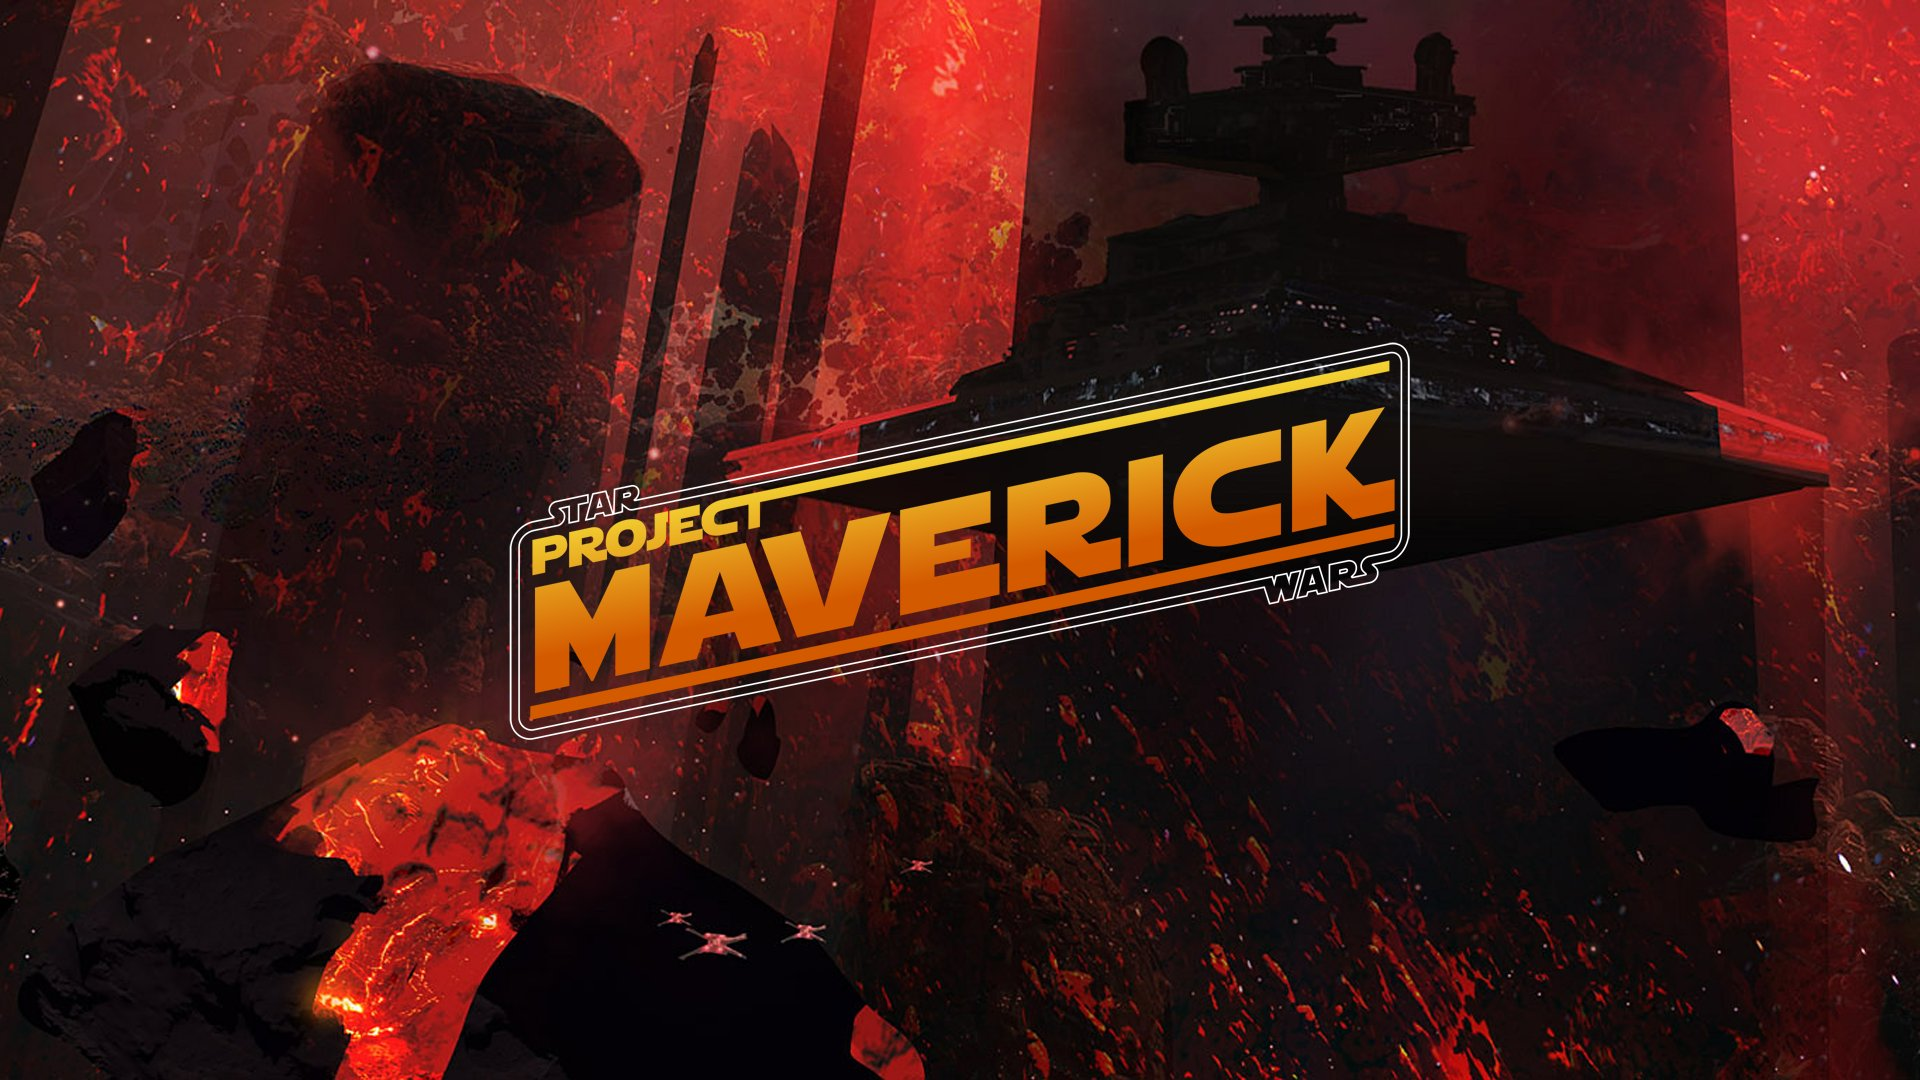 Star Wars: Project Maverick, A New EA Star Wars Game, Has Leaked Online Via The PlayStation Network